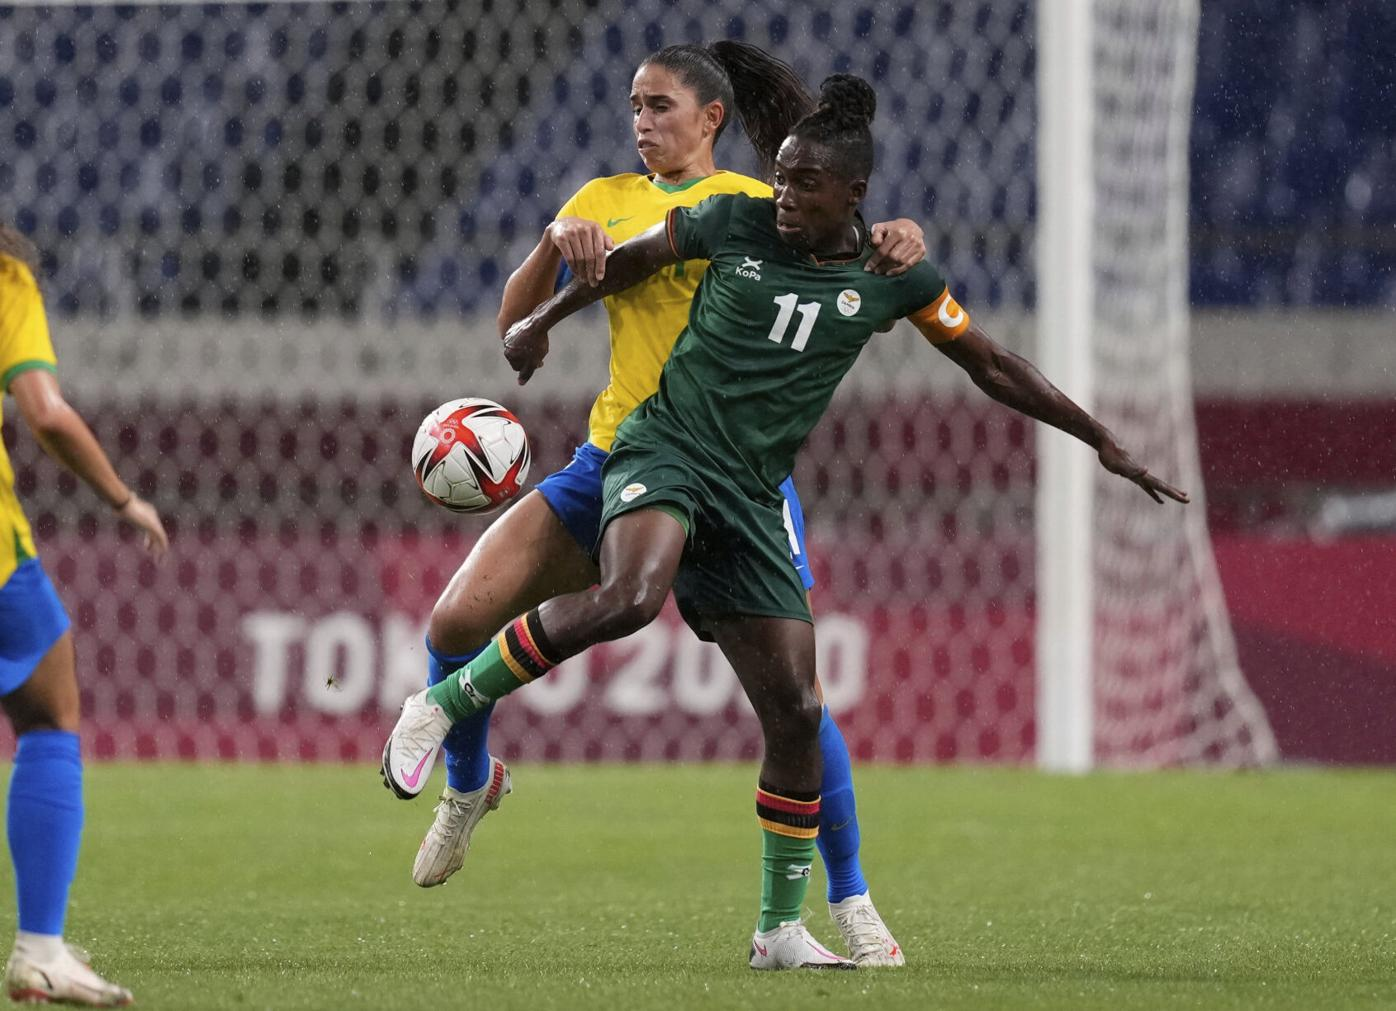 Brazil Qualifies for Quarterfinals with Canada